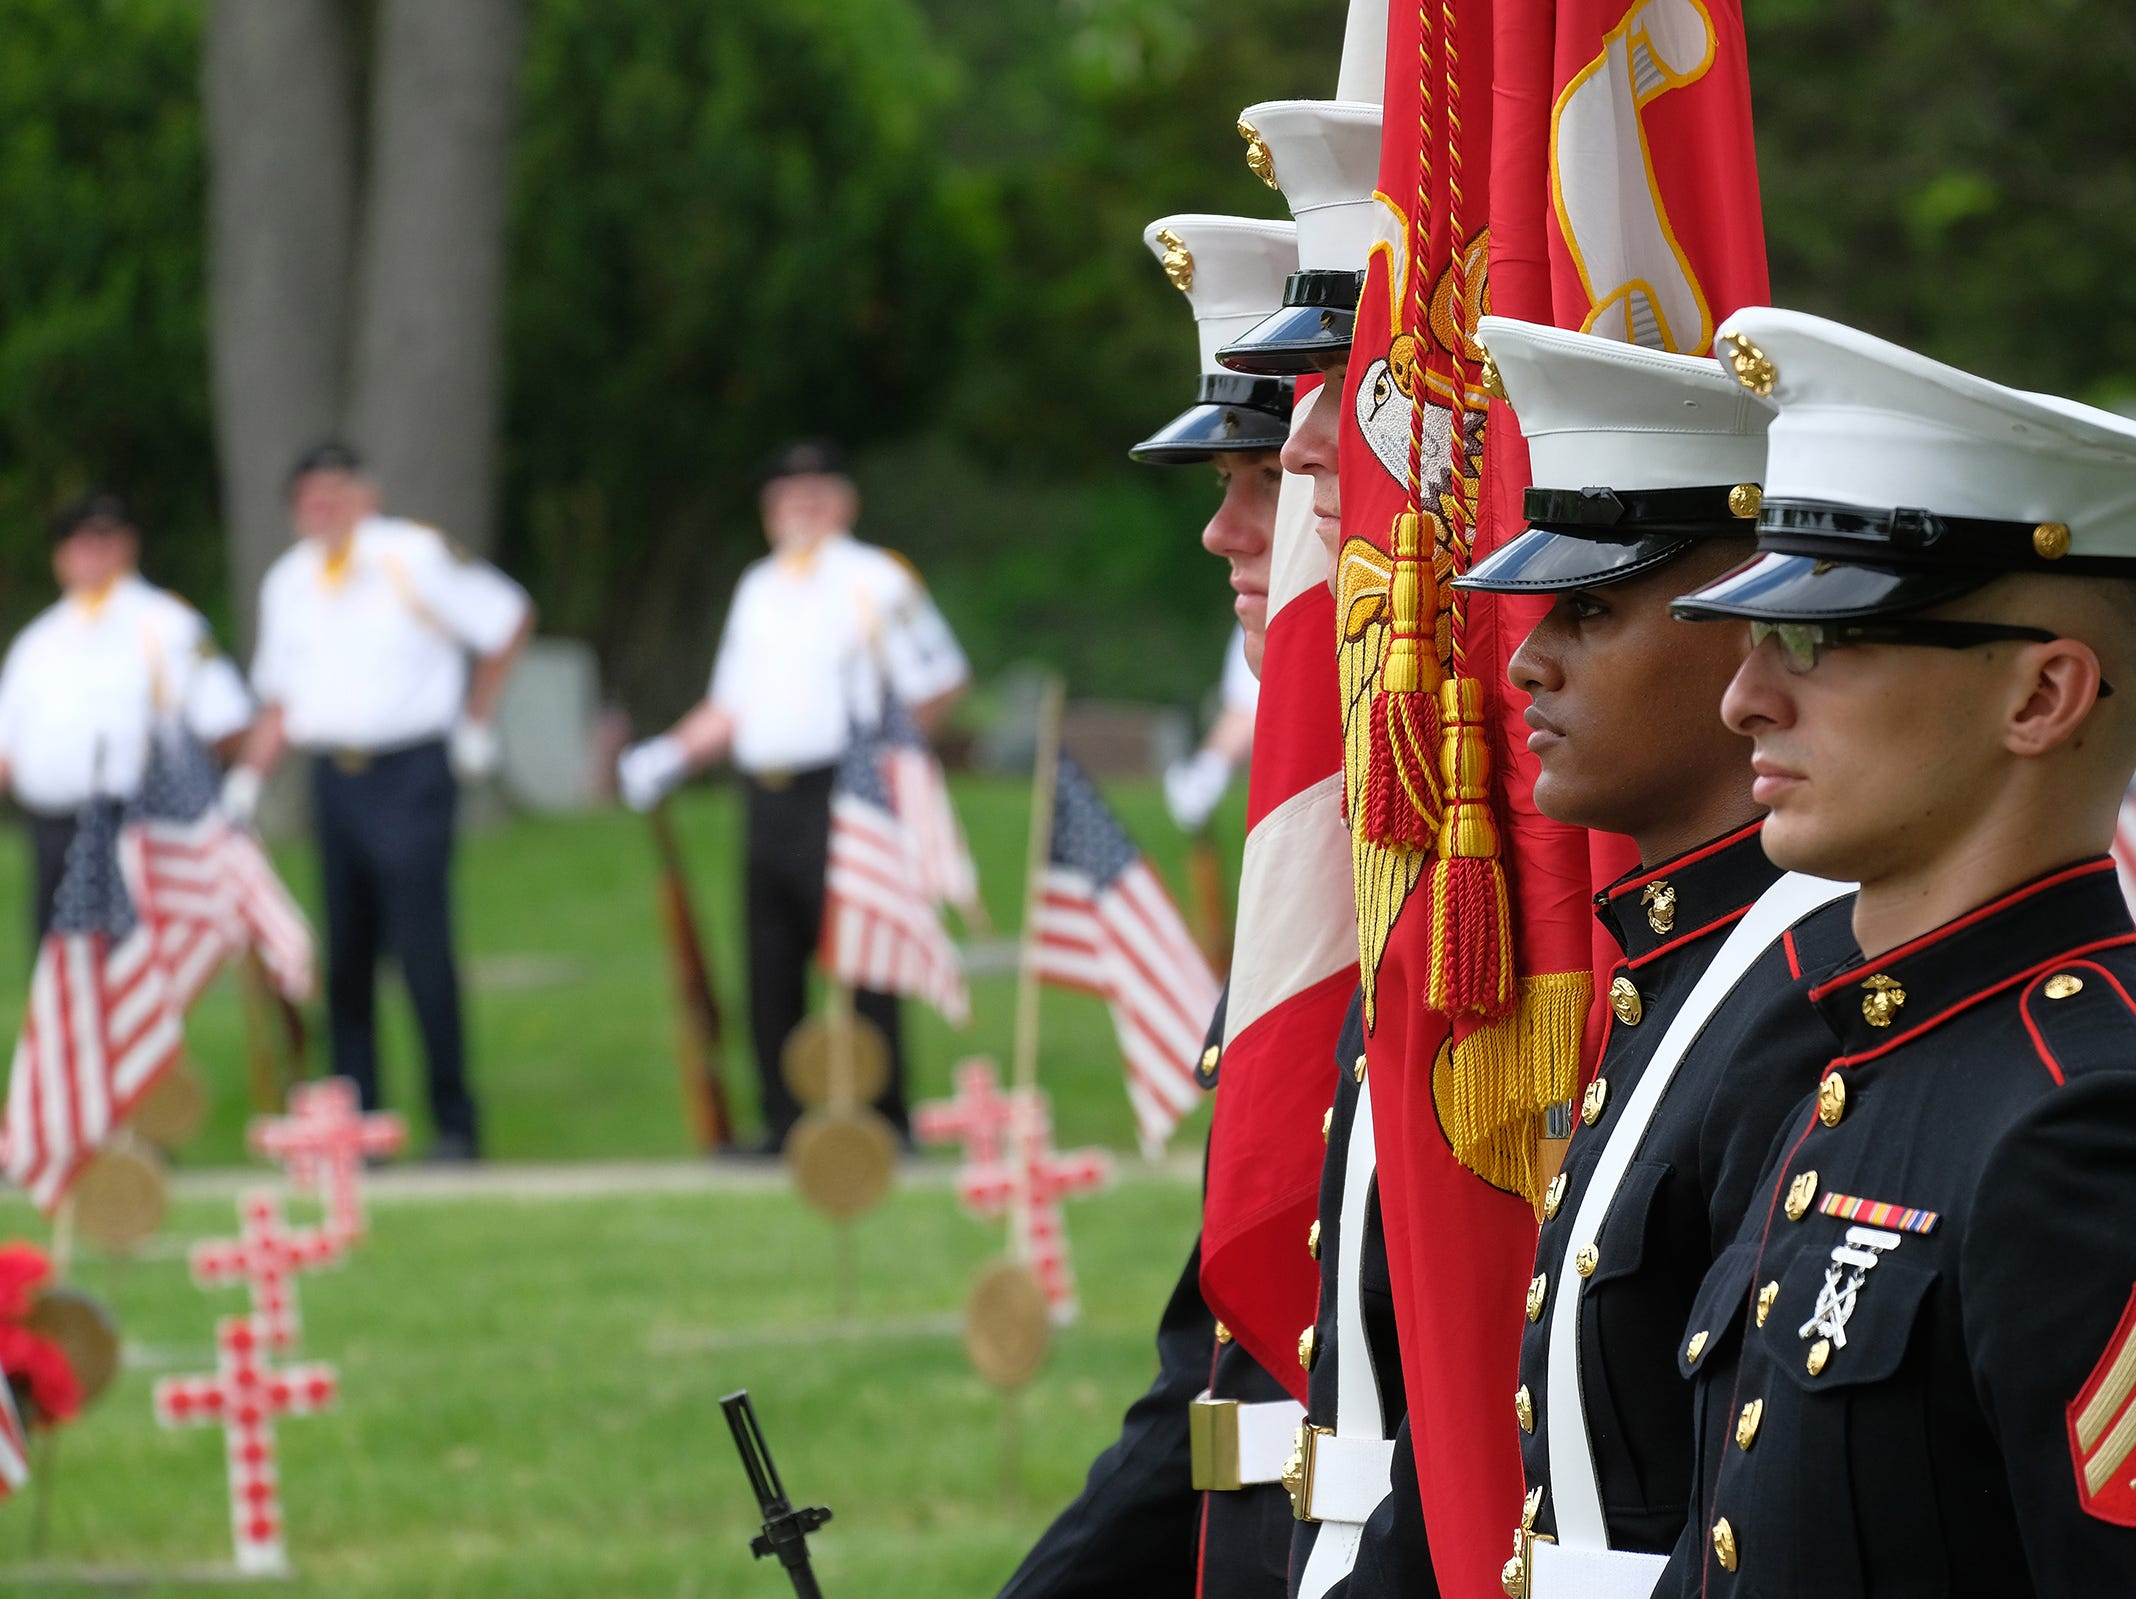 A U.S. Marine Corps Color Guard performs its duties at a Memorial Day ceremony at Evergreen Cemetery in Lansing on Saturday, May 26, 2018.